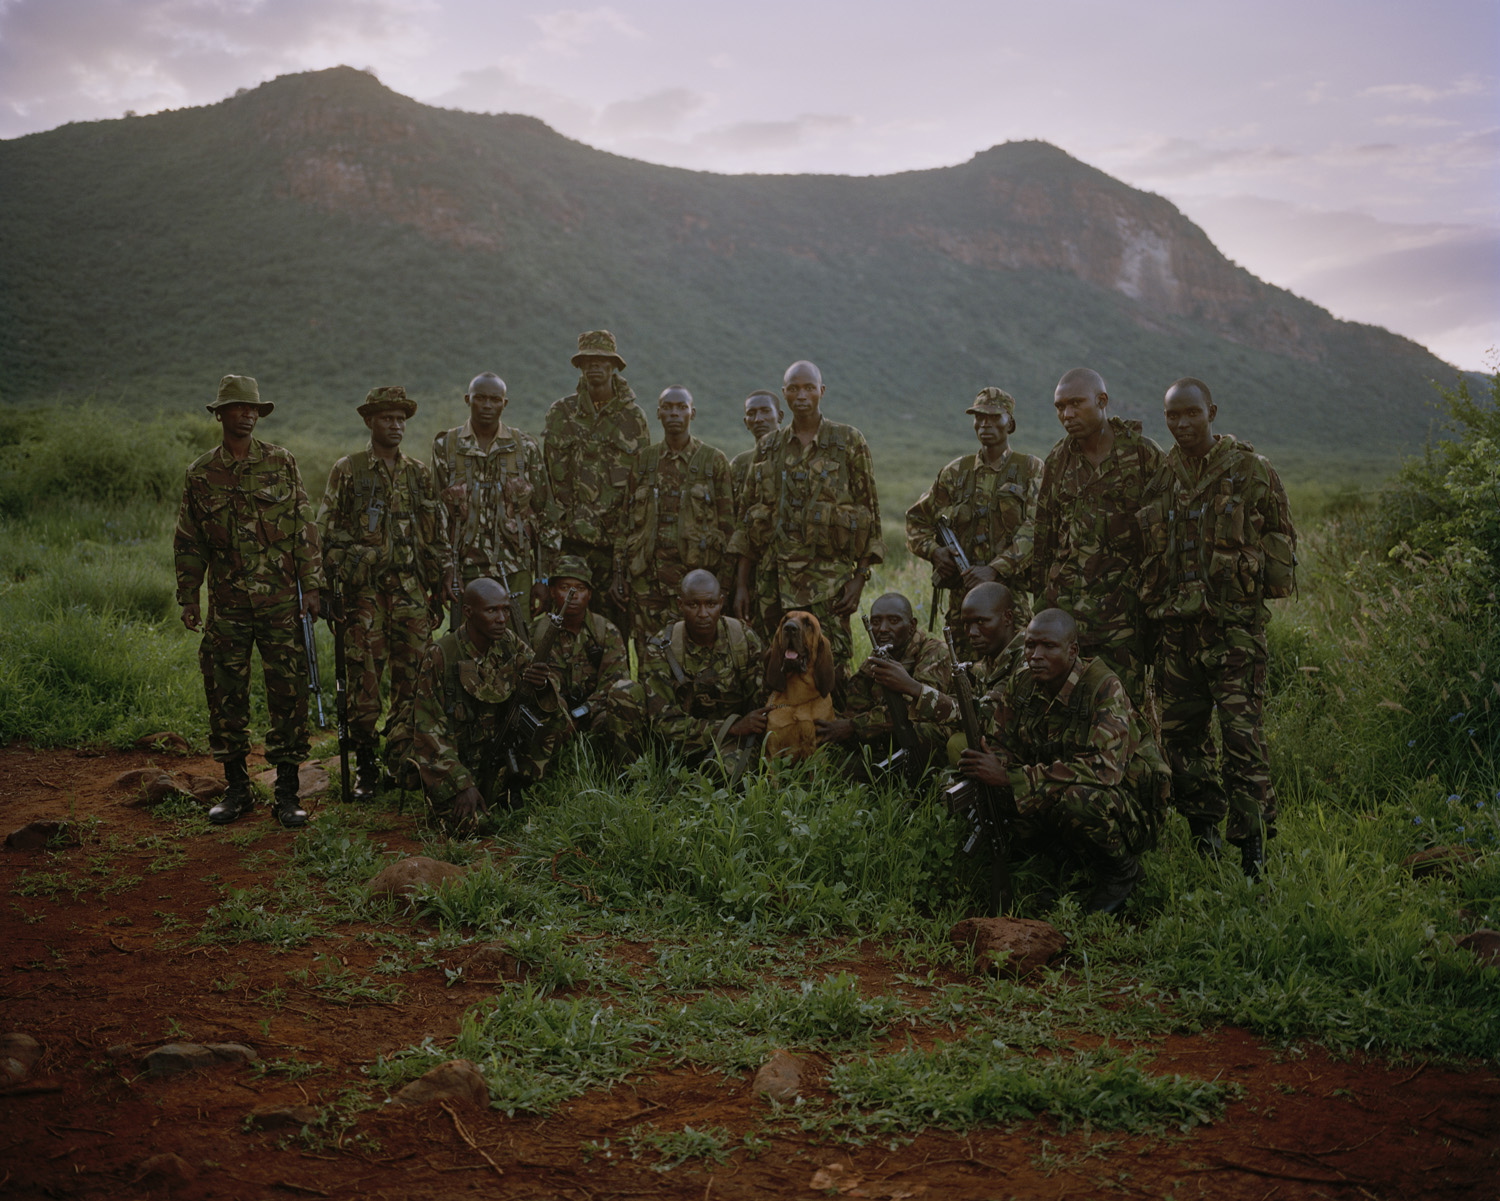 Call sign 9.2, Isiolo County, northern Kenya.                                                              '9.2' is a mobile multi-ethnic anti poaching unit who can respond quickly and effectively to any given situation, not just poaching, across all of the Northern Rangelands Community Conservancies, without fear of tribal conflict. They live in the bush for 26 days of each month, returning to base to rest and re-equip for the remaining four days of each month.